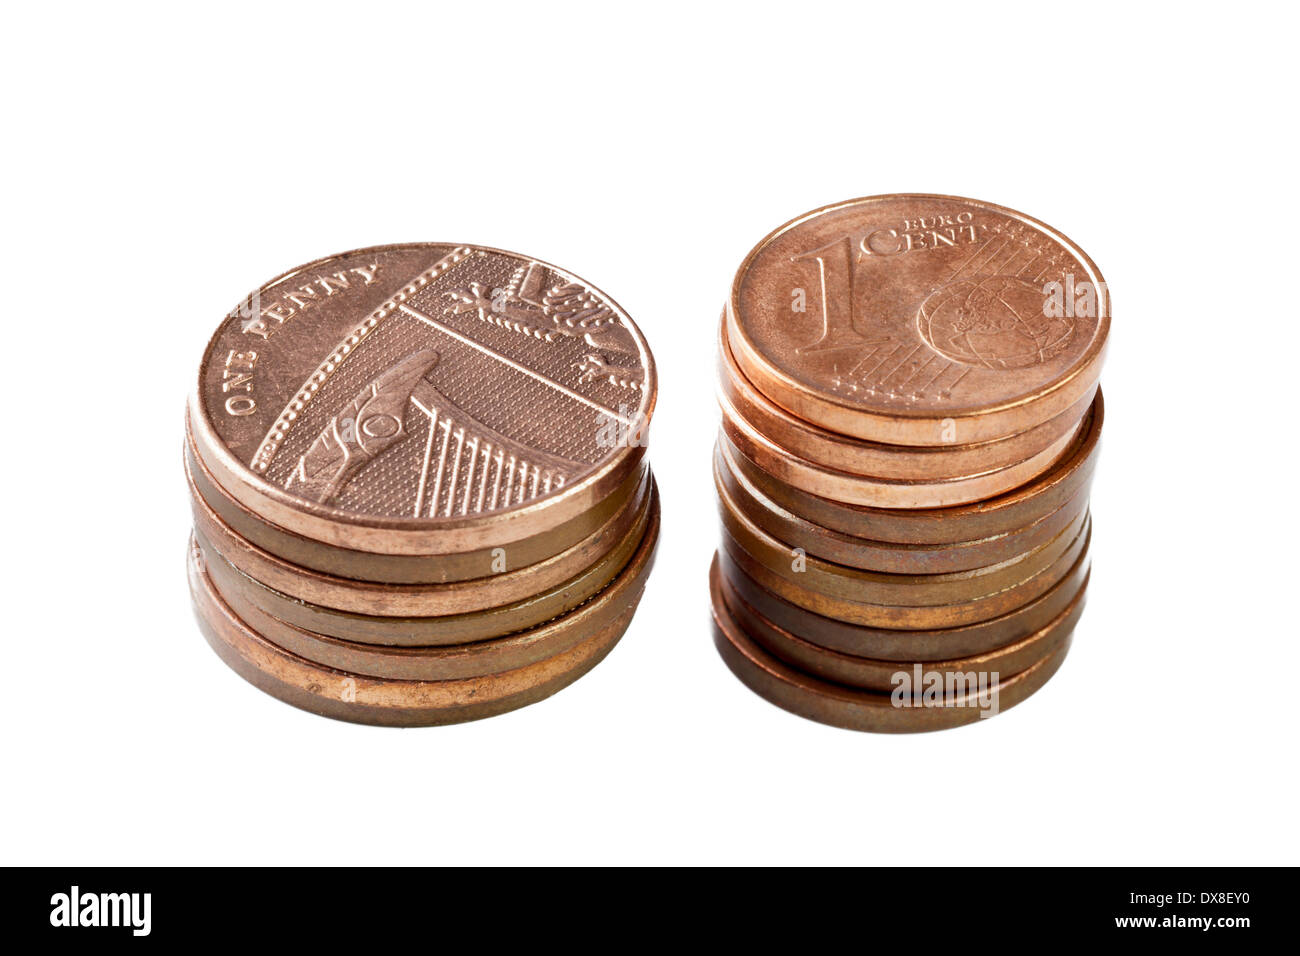 British pennies and Euro cent coins - Stock Image